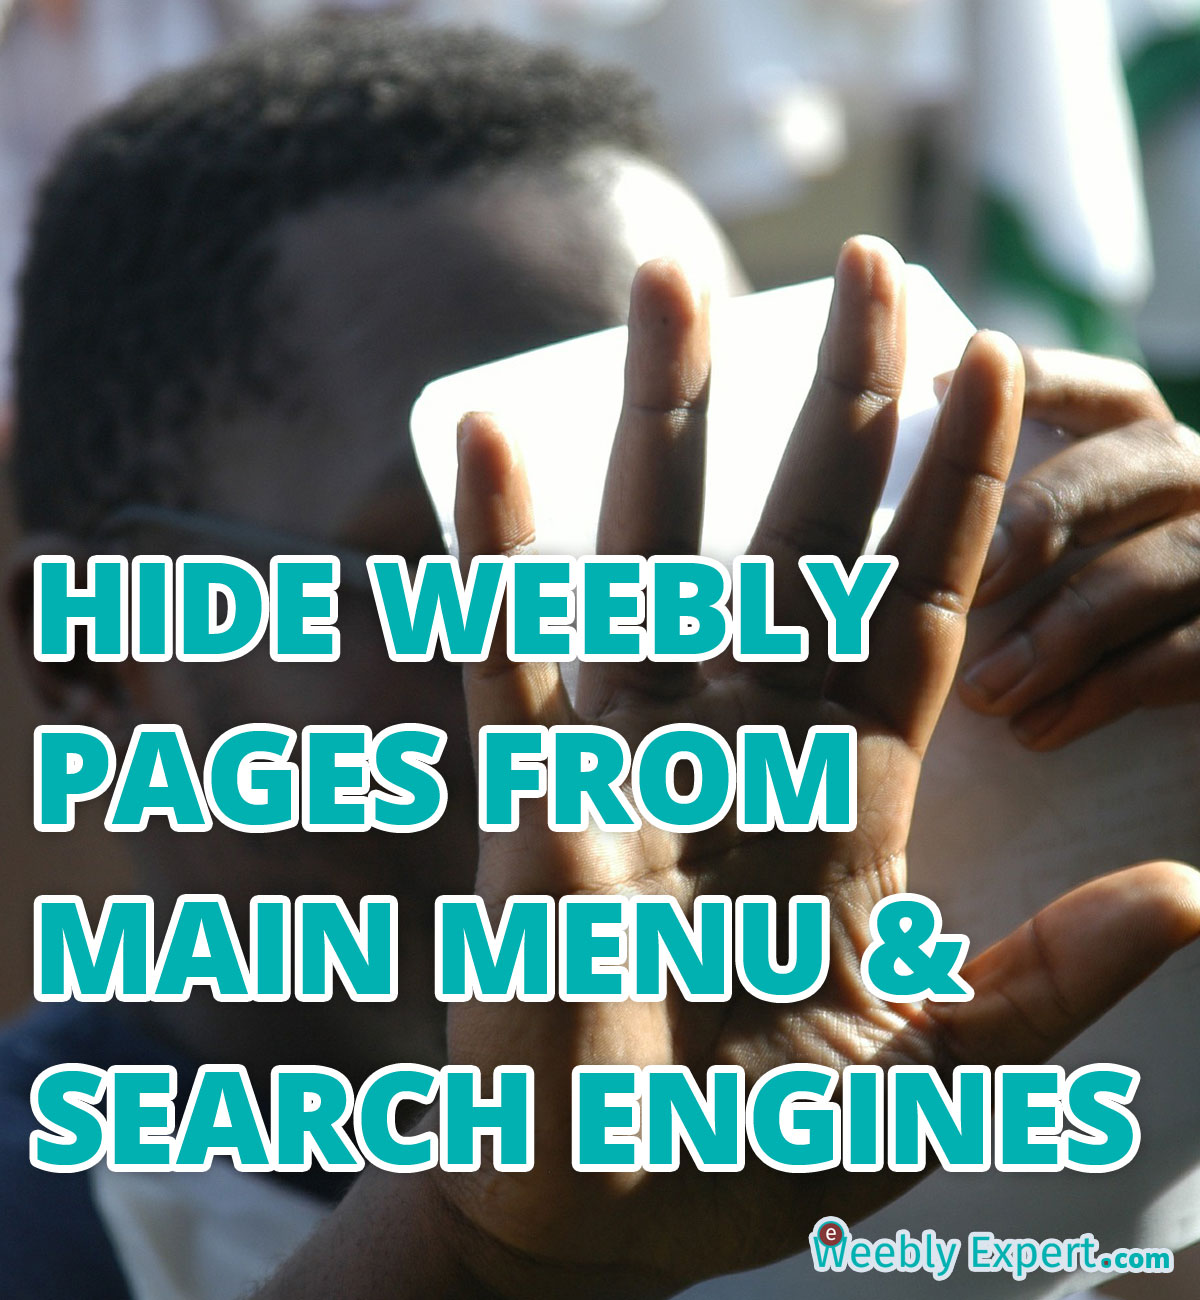 hide weebly pages from navigation menu and search engines